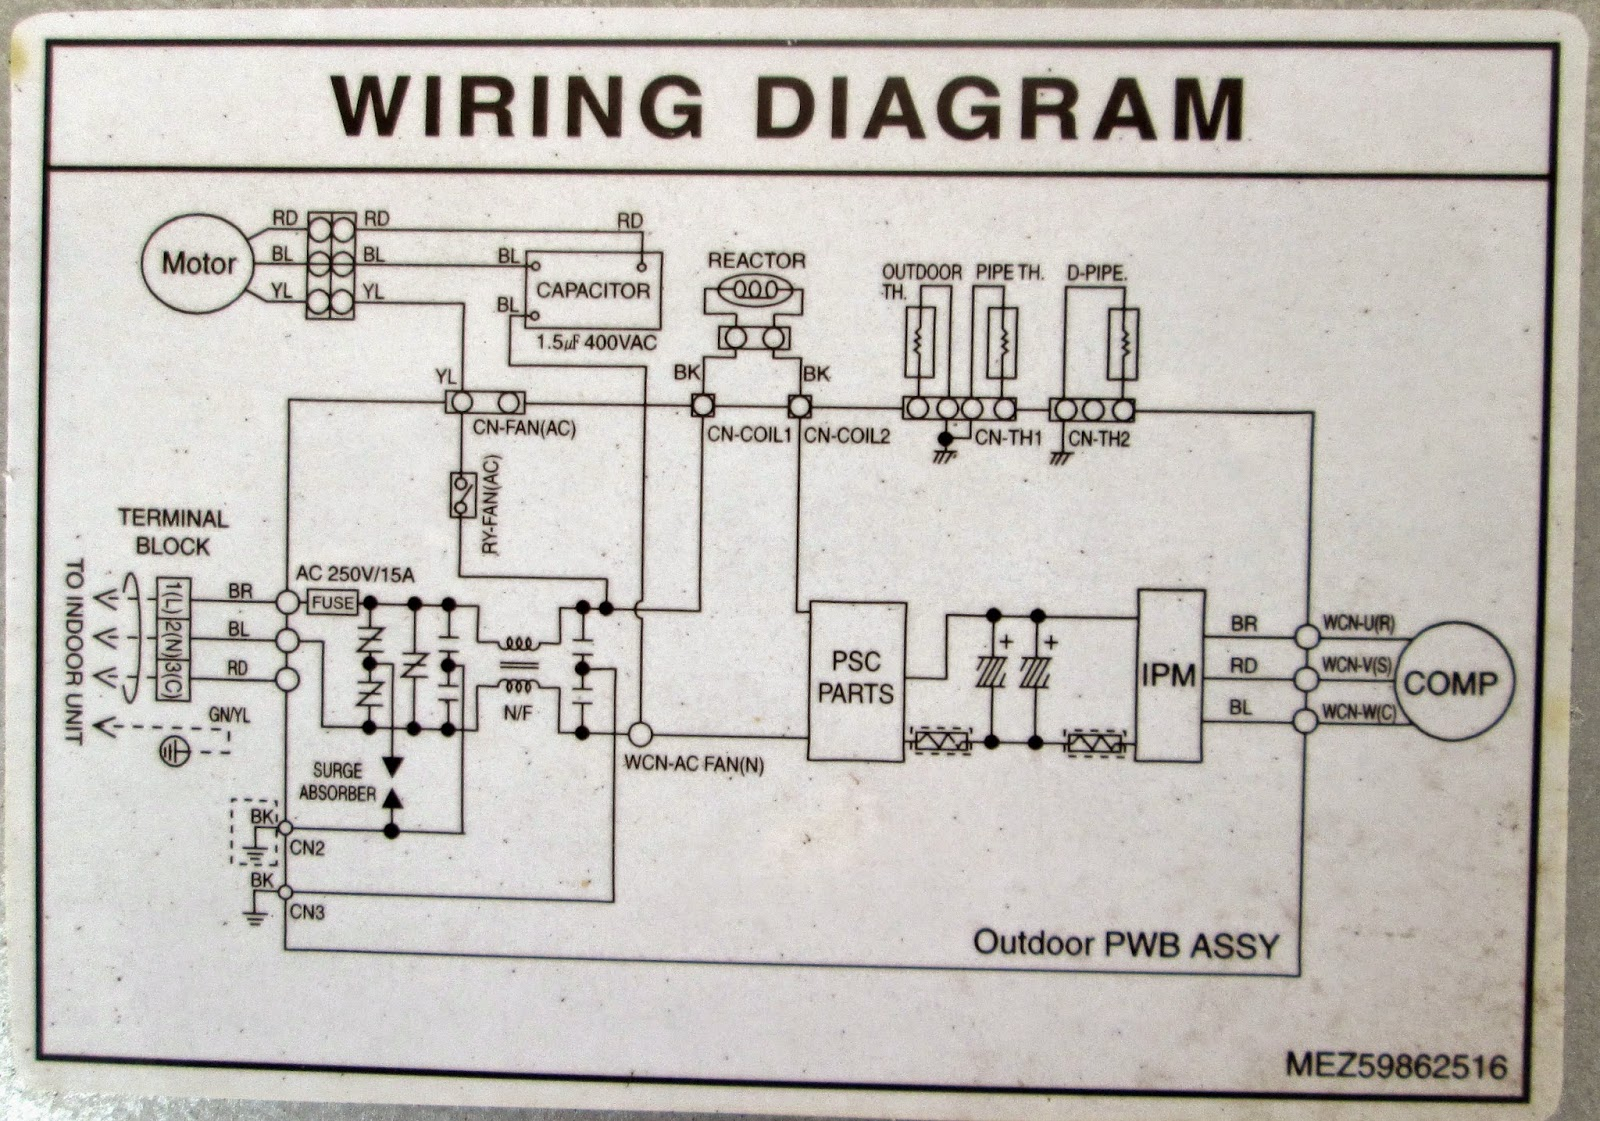 WD%2Bsharp%2Binverter%2B2 lg ac wiring diagram electrical cord wire diagram 3 \u2022 wiring panasonic inverter air conditioner wiring diagram at gsmx.co